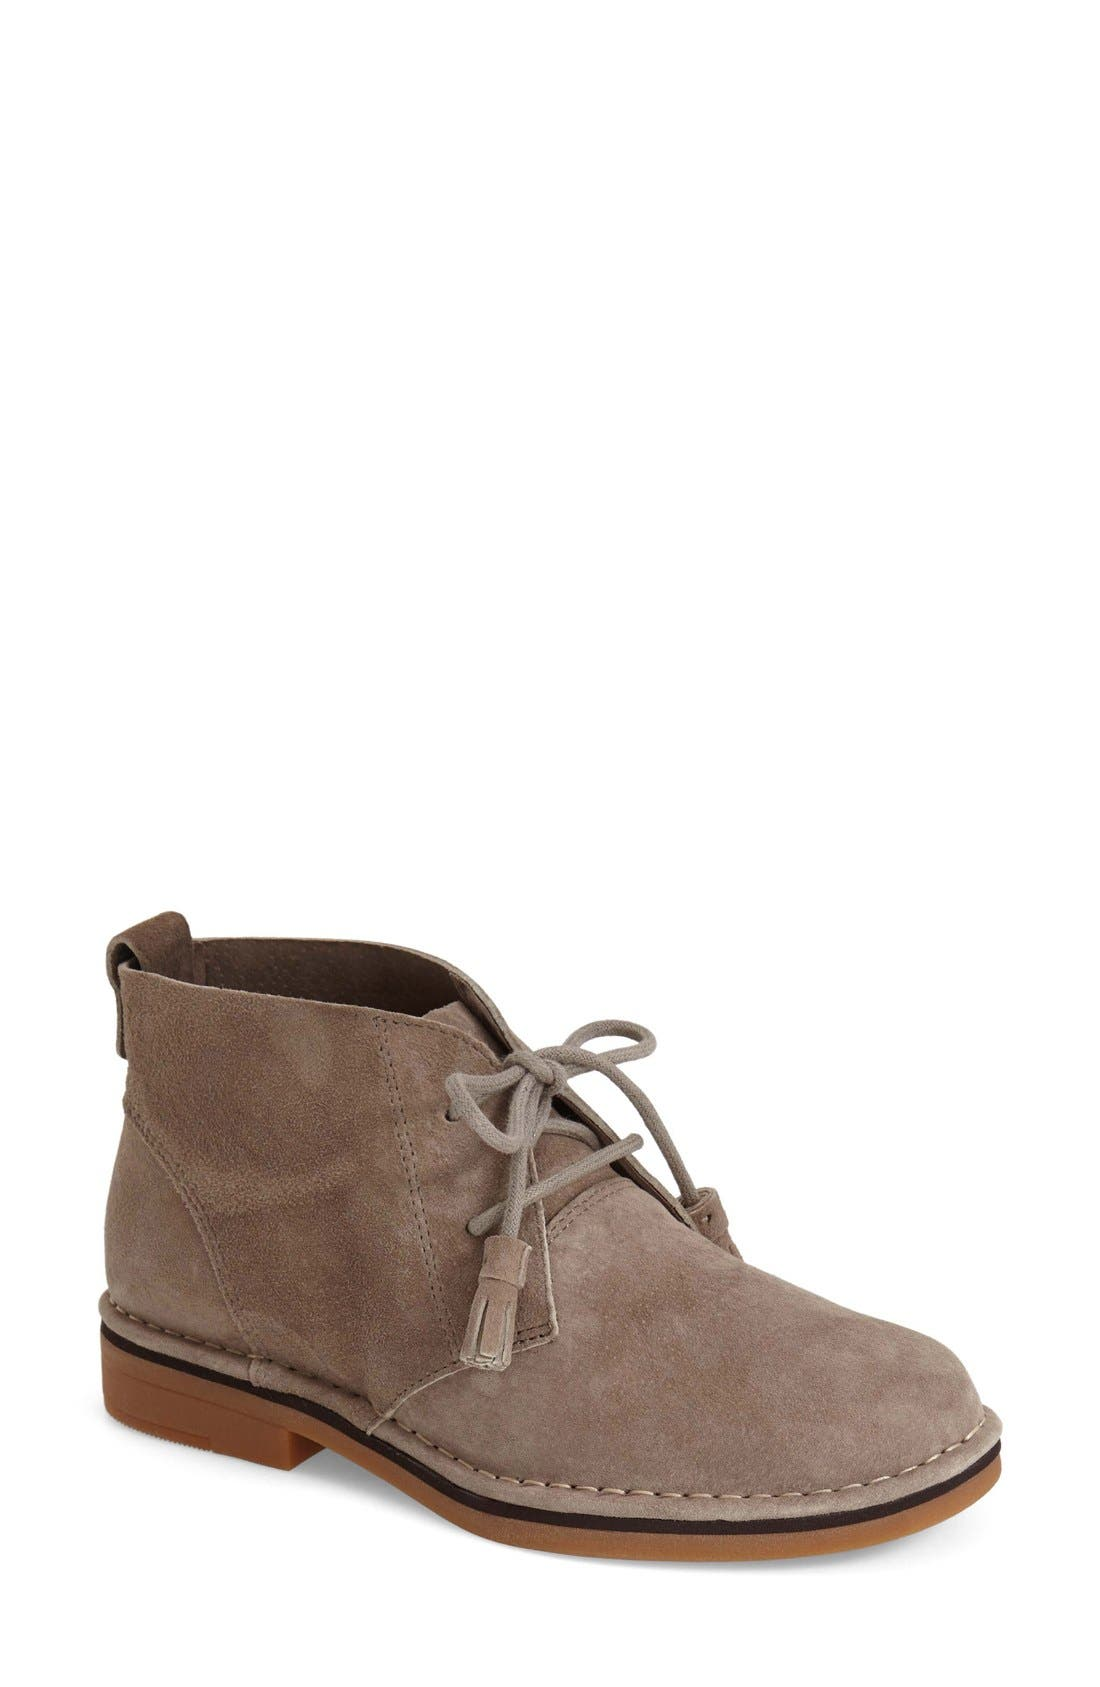 'Cyra Catelyn' Chukka Boot,                             Main thumbnail 1, color,                             Taupe Suede